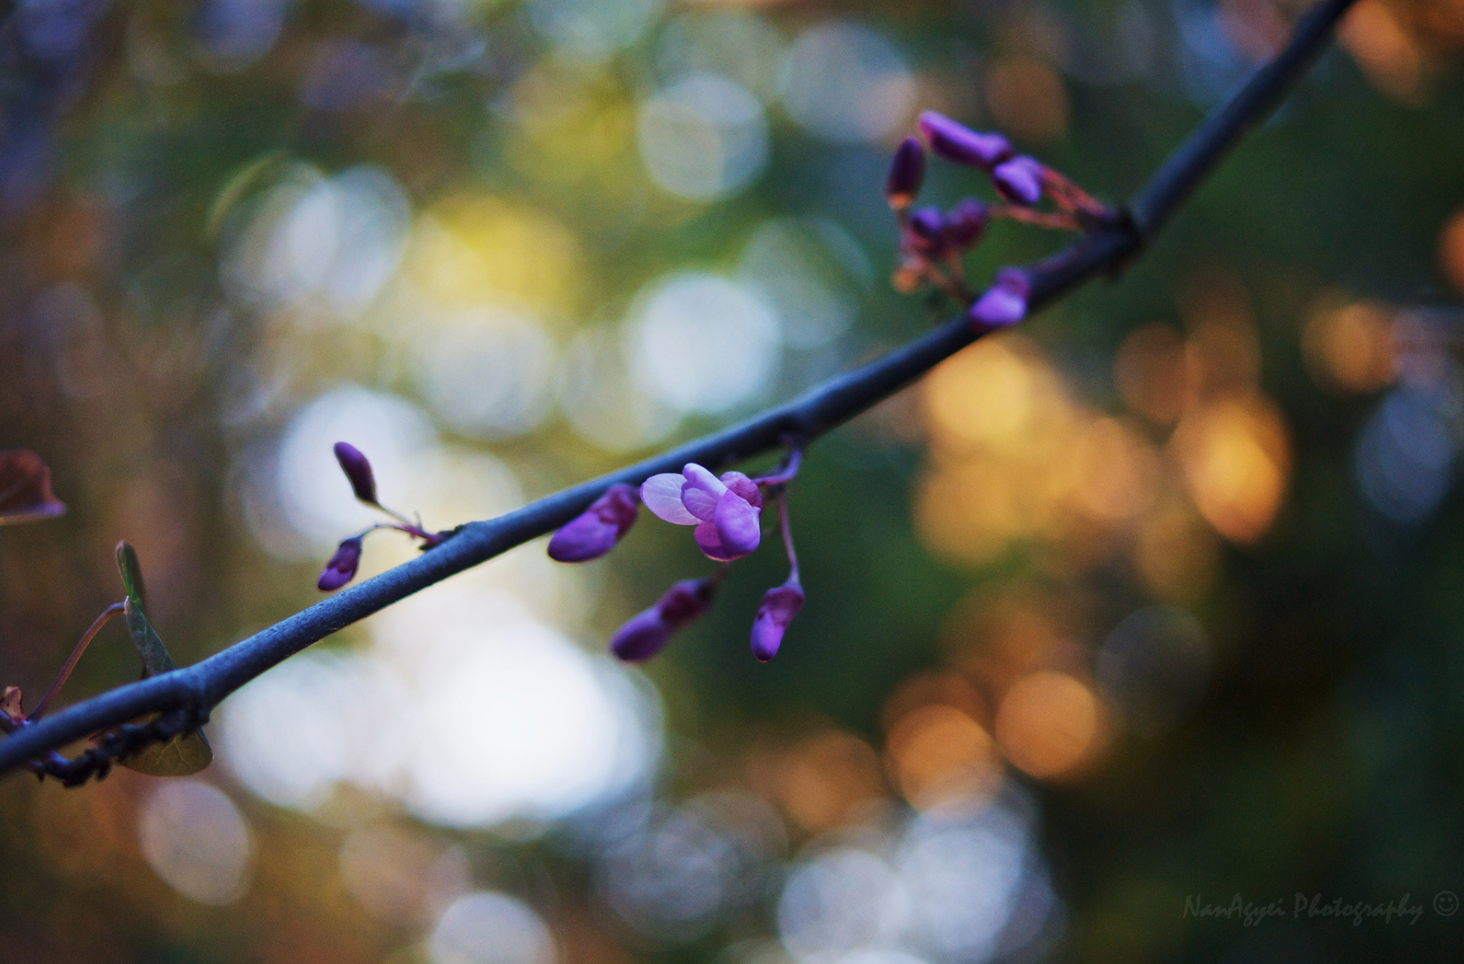 Bokeh Photography - Capturing The Bokeh Effect